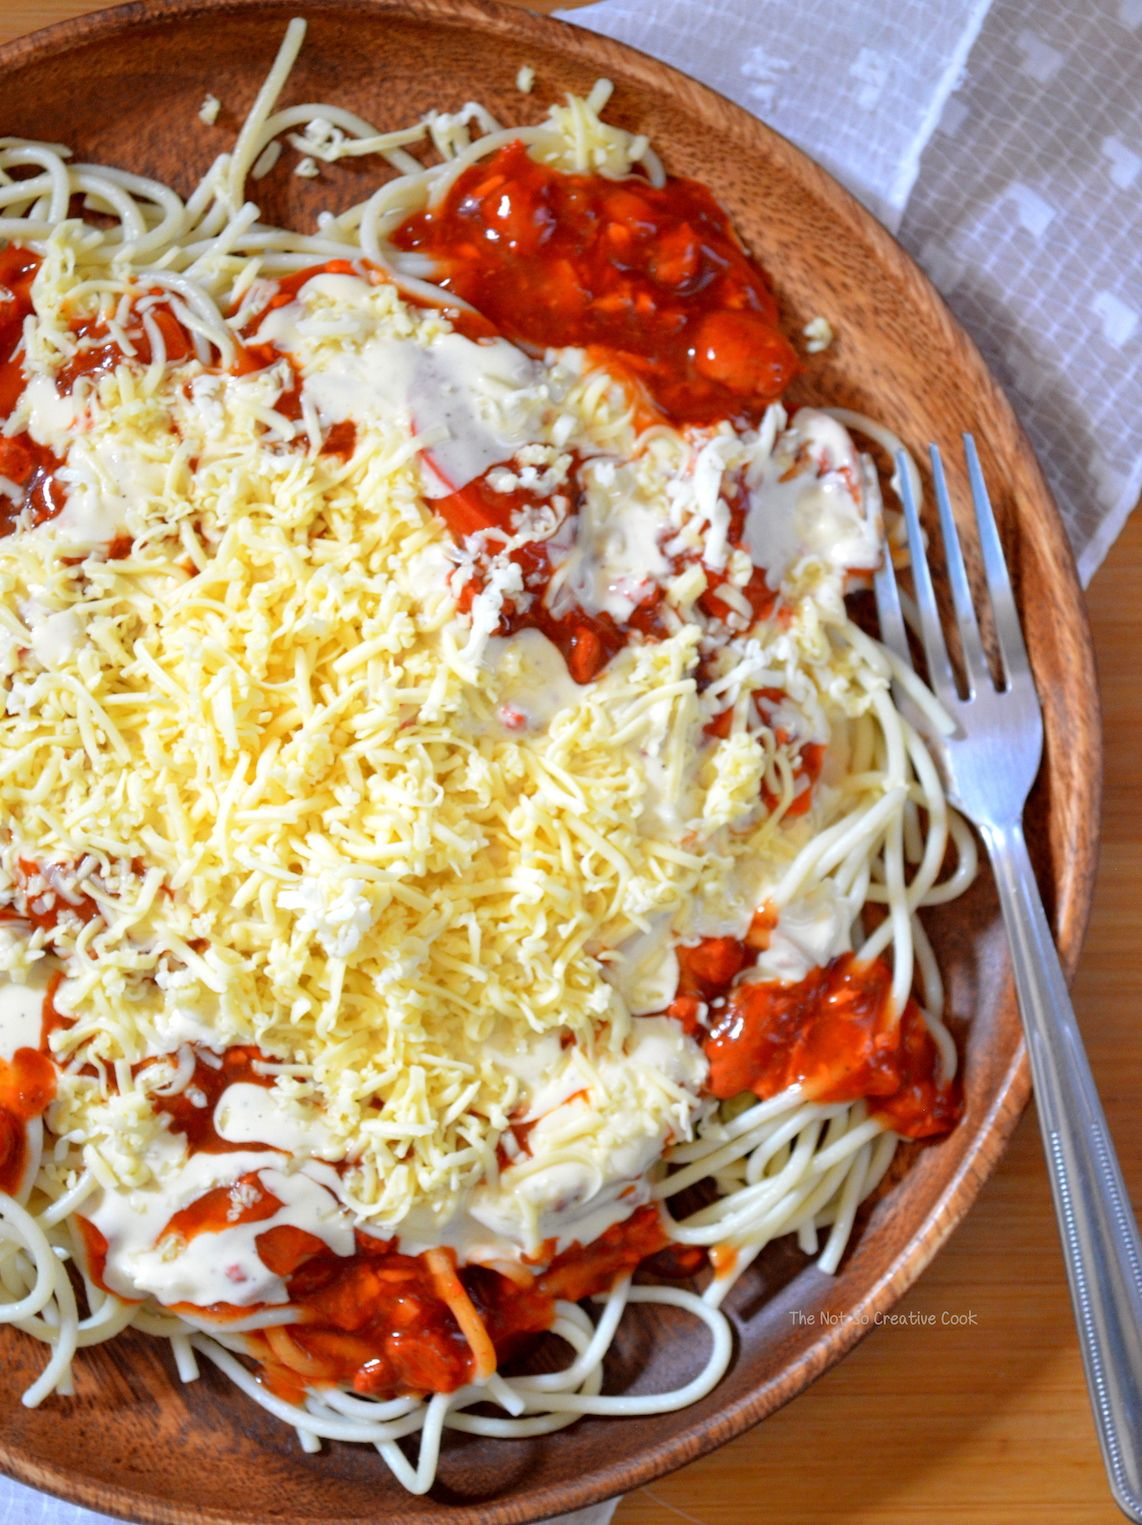 Filipino Spaghetti With Creamy White Sauce The Not So Creative Cook Recipe Cooking Healthy Baking Substitutes Baking Substitutes